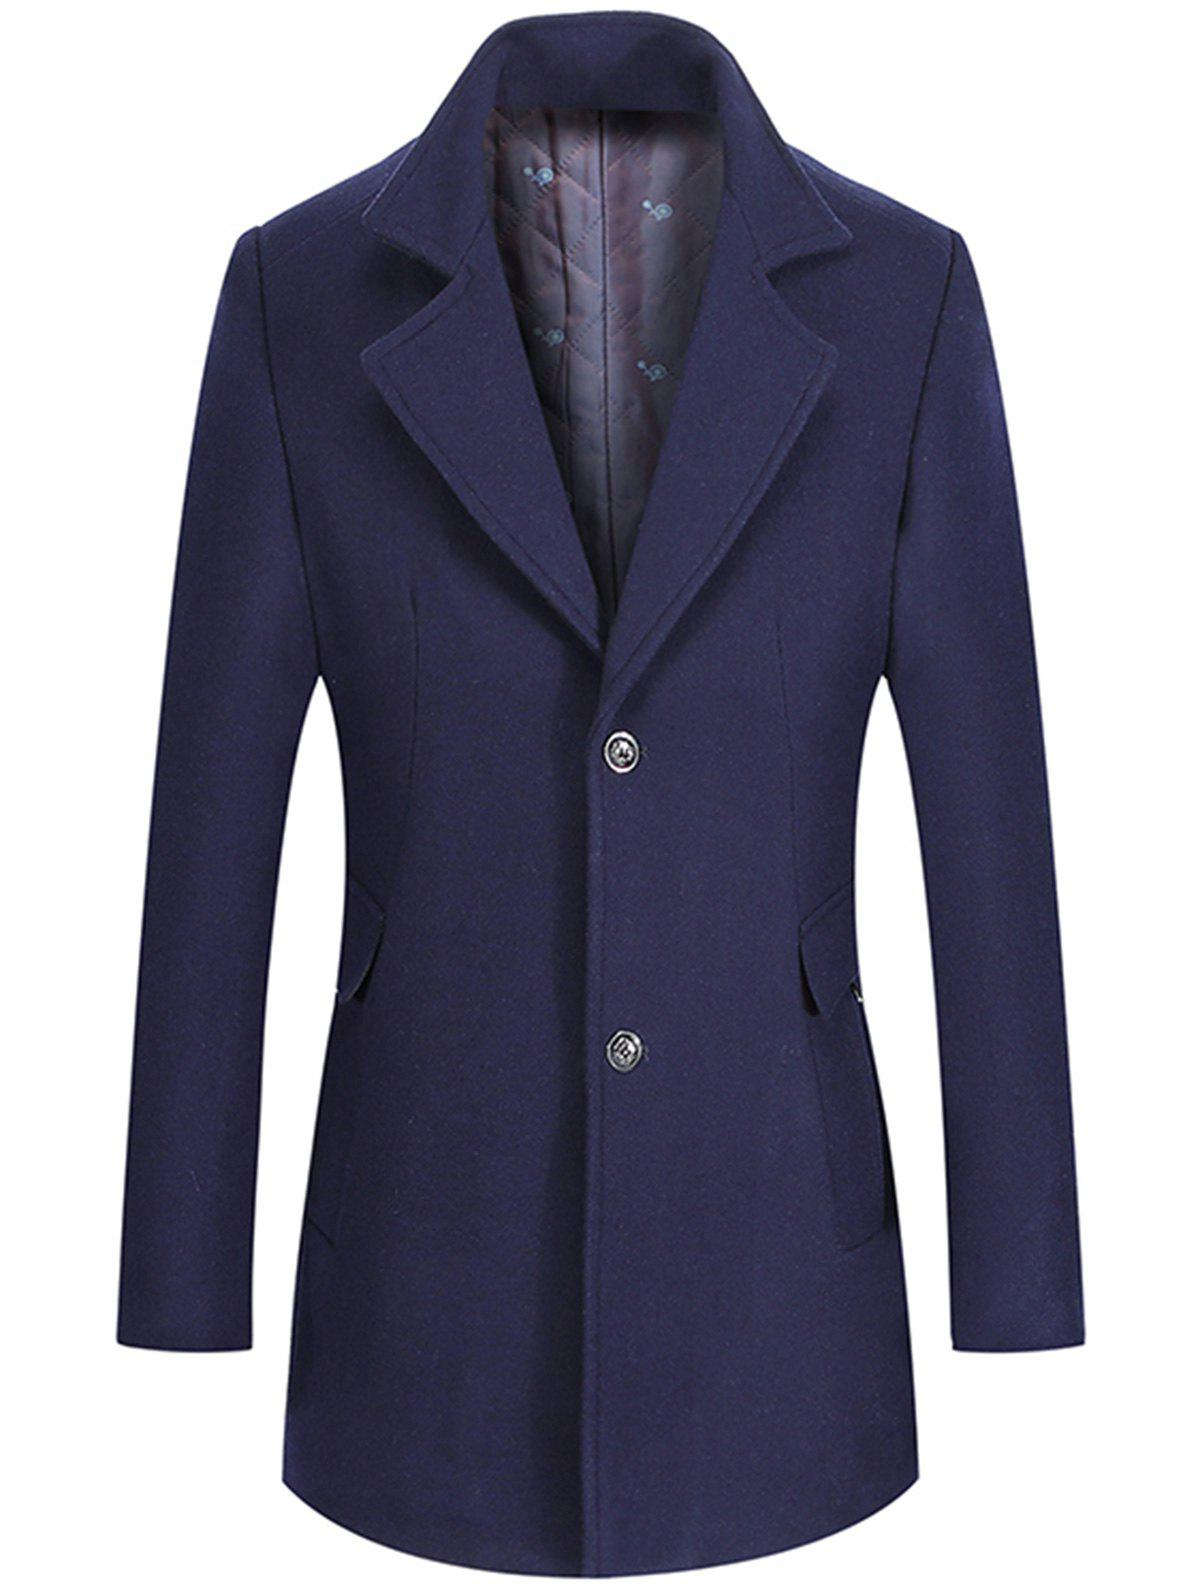 Wool Mix Lapel Collar Single Breasted Coat single breasted lapel lengthen wool coat